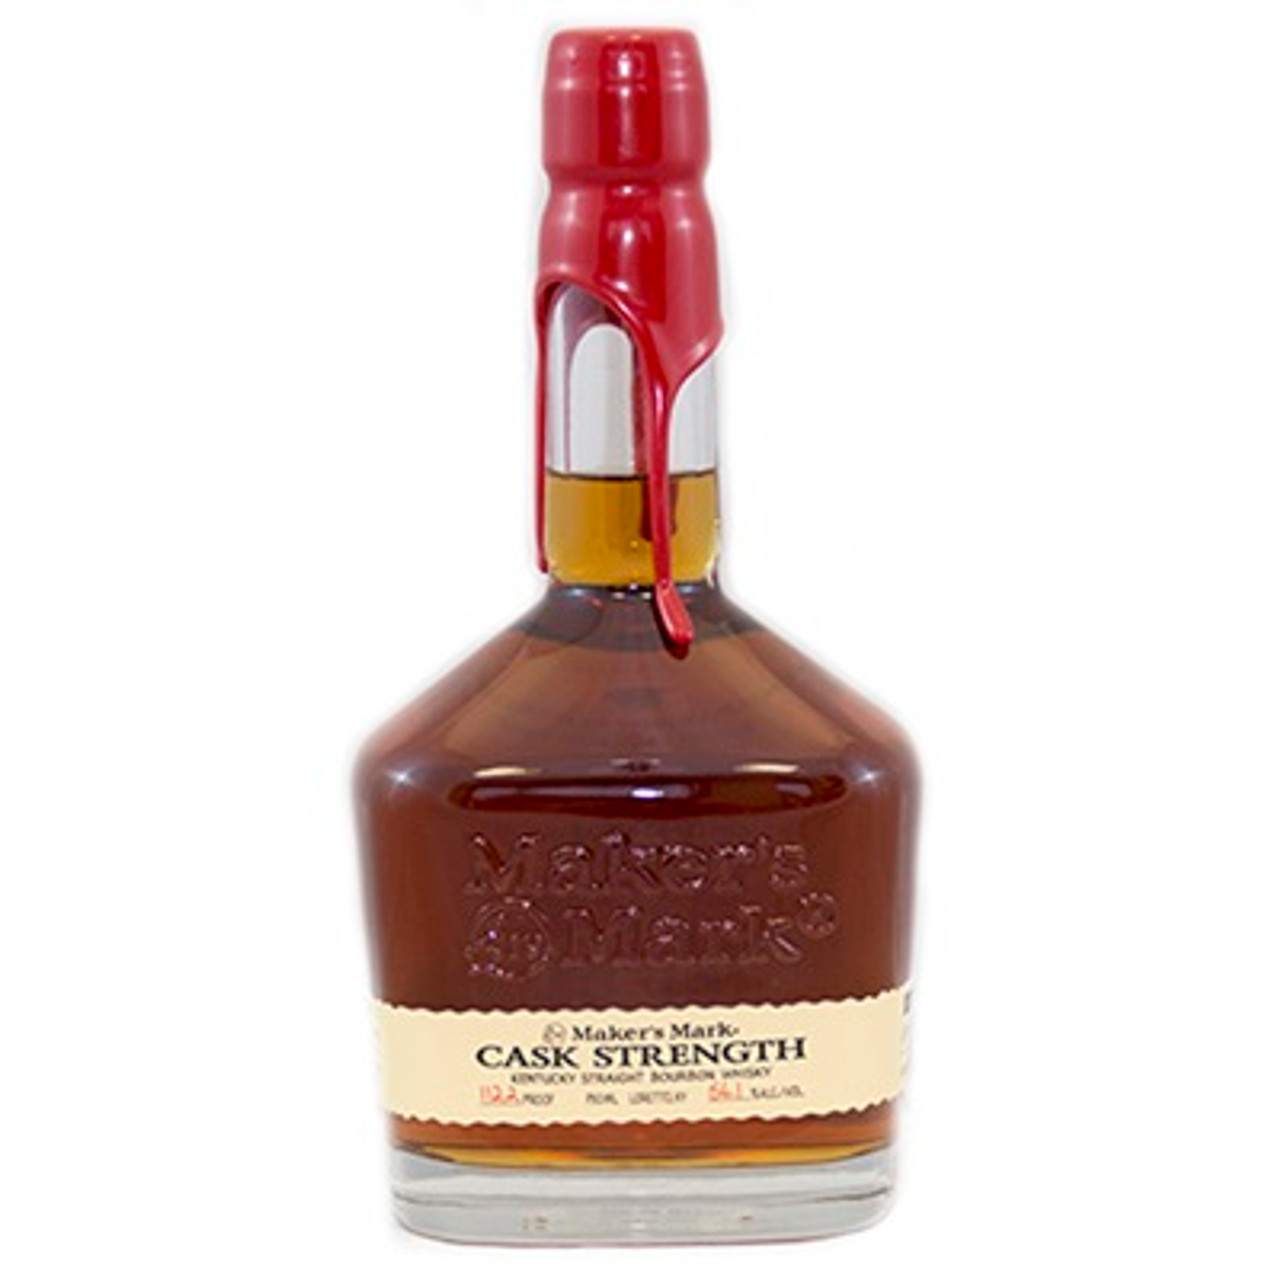 Makers Mark Cask Strength Bourbon 750ml